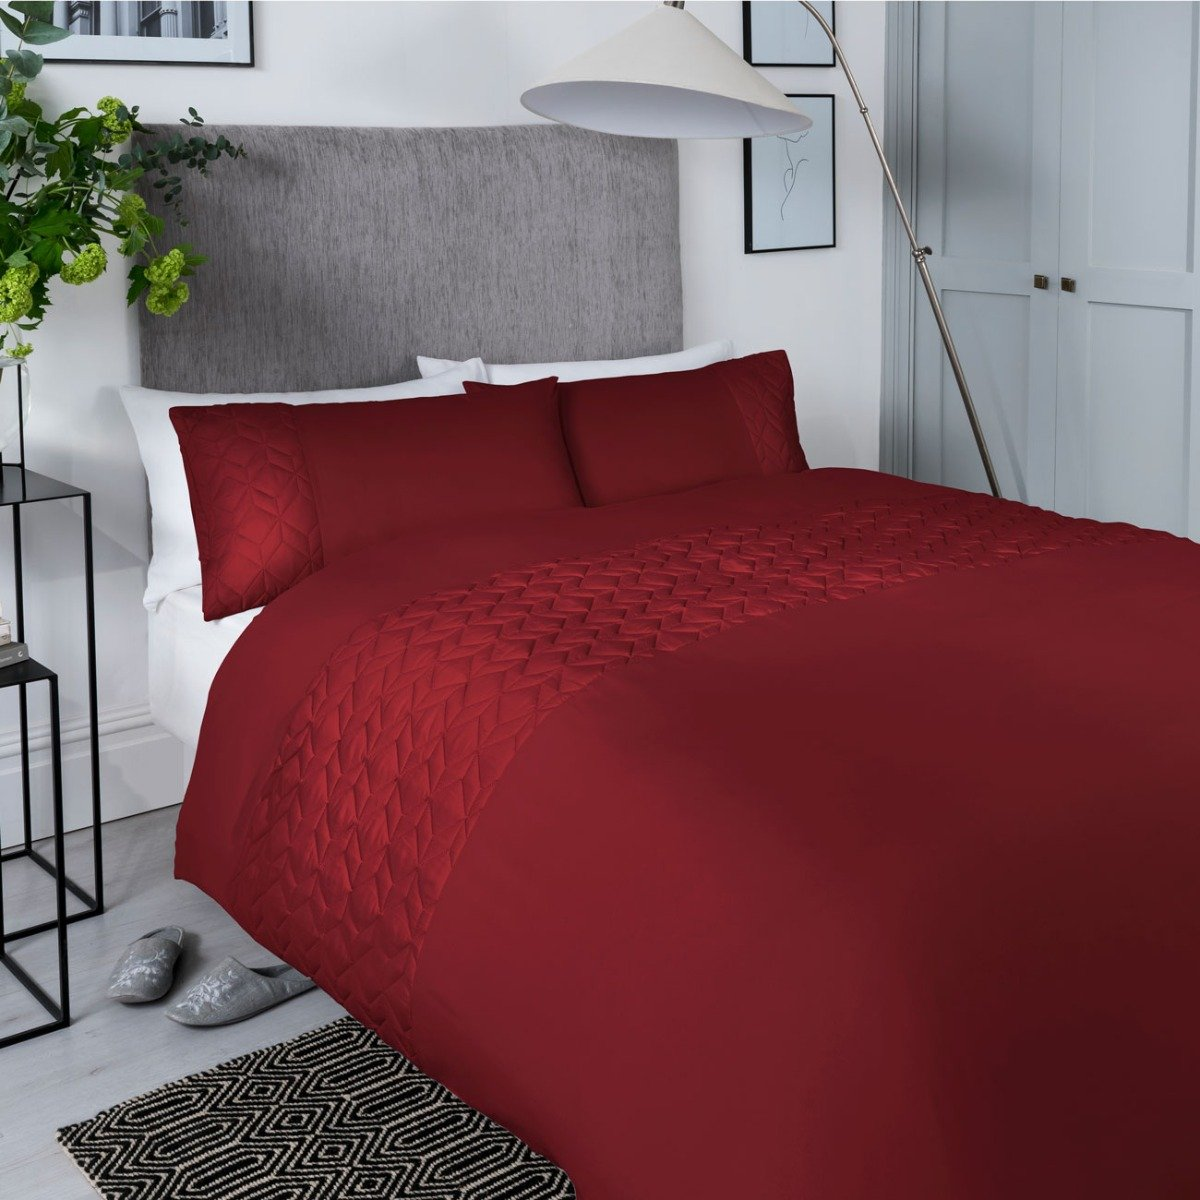 Pinsonic Cube Red Bedding - Reversible Duvet Cover and Pillowcase Set